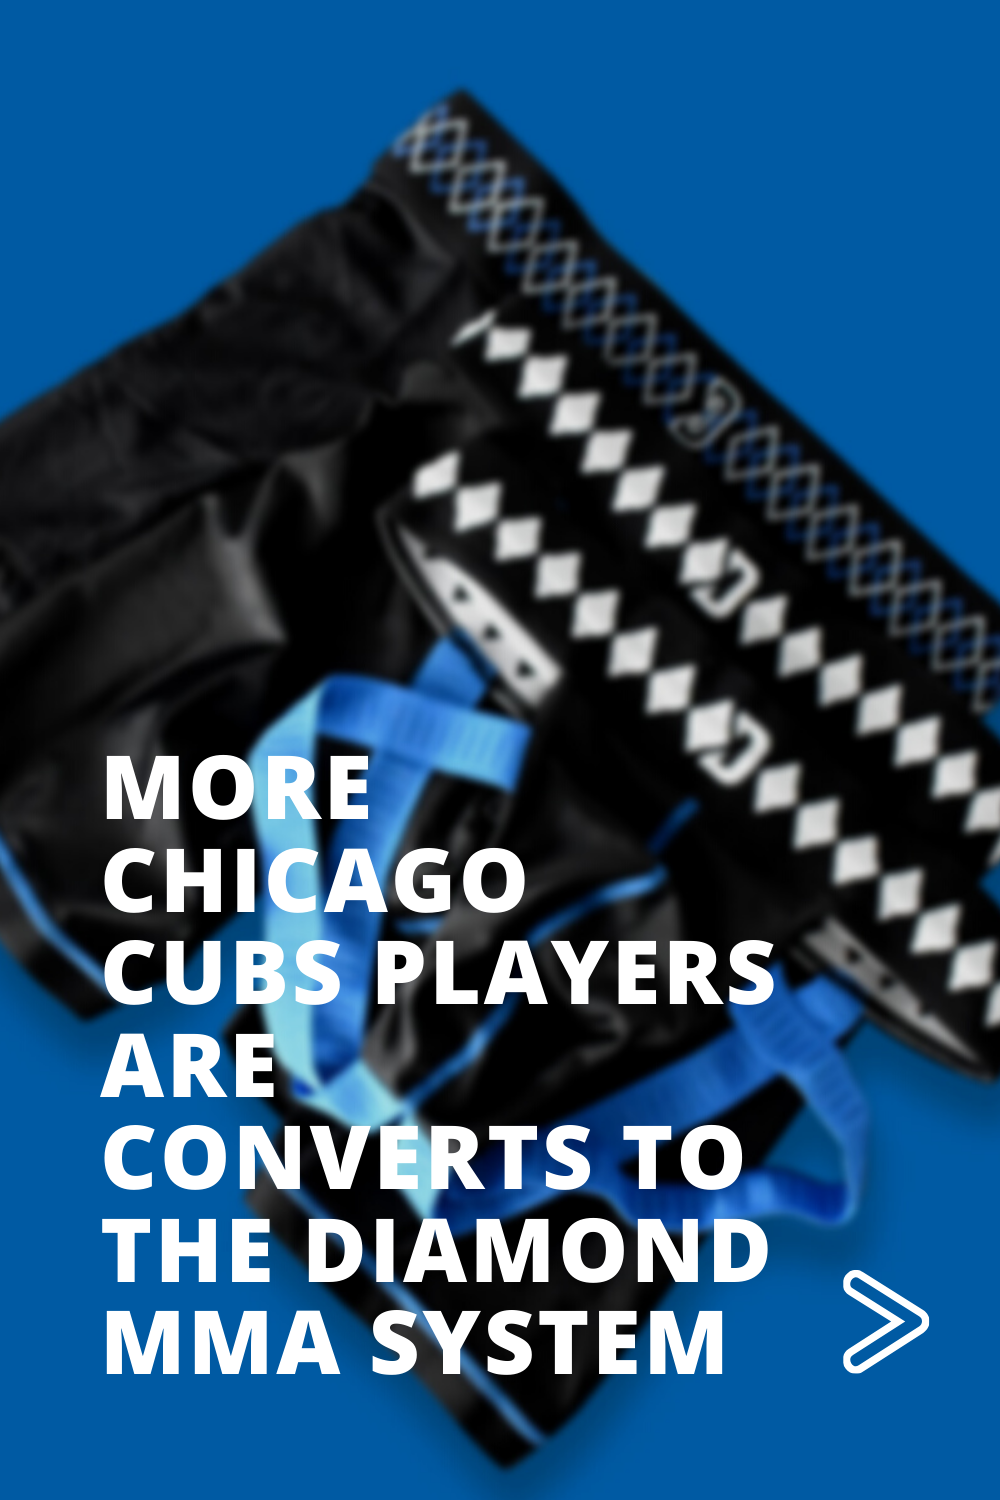 More Chicago Cubs Players are Converts to the Diamond System